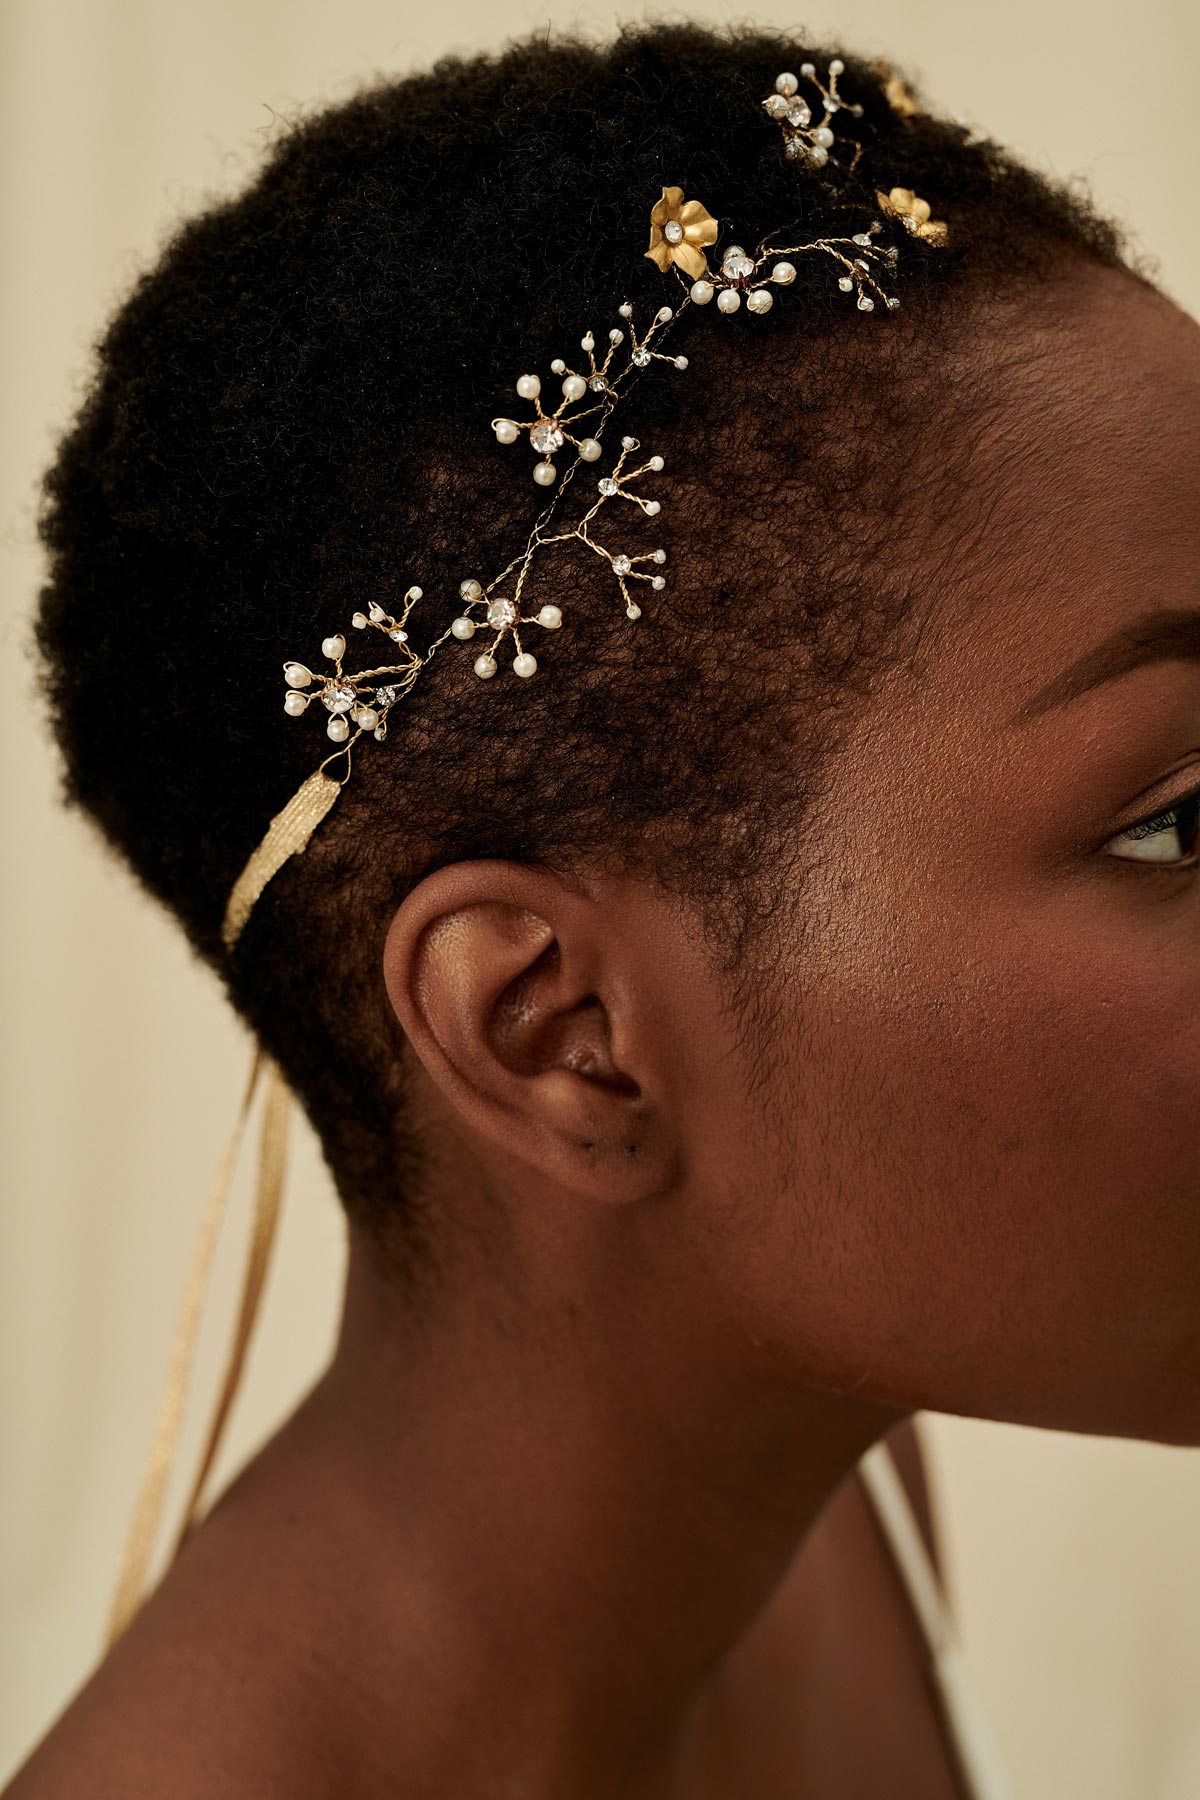 A gold wired bridal hair vine with brass flowers, glass beads, and glittery crystal clusters